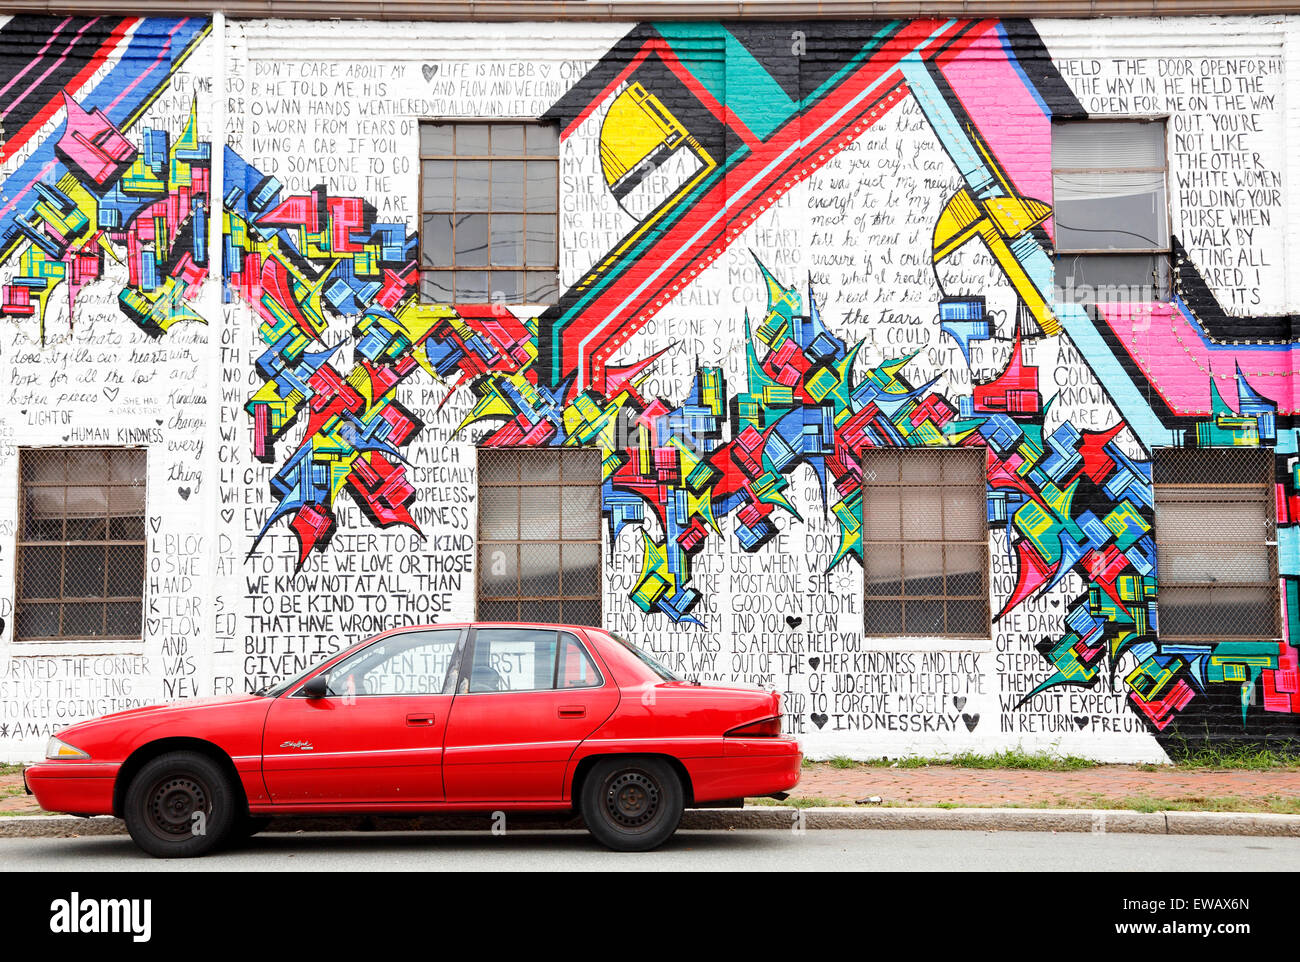 buick-skylark-parked-in-front-of-graffiti-wall-on-west-cary-street-EWAX6N.jpg